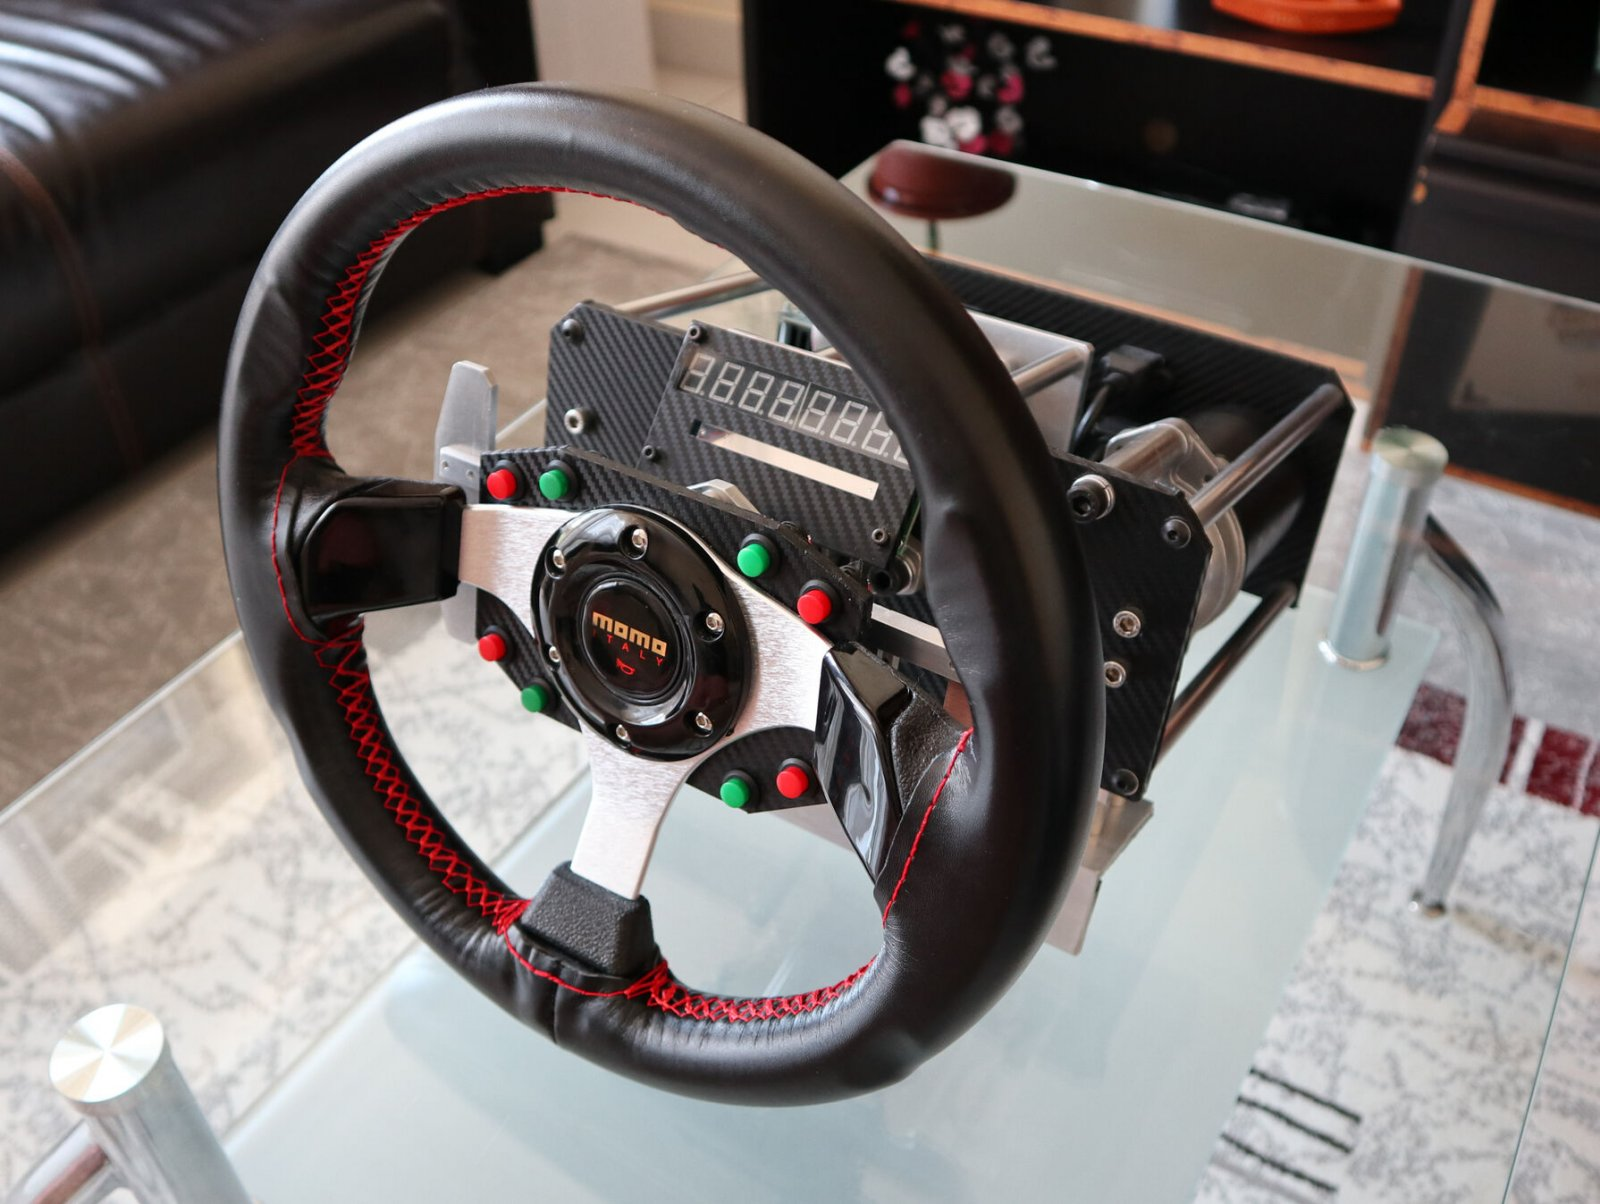 348906_diy_steering_wheel_1-jpg.63995